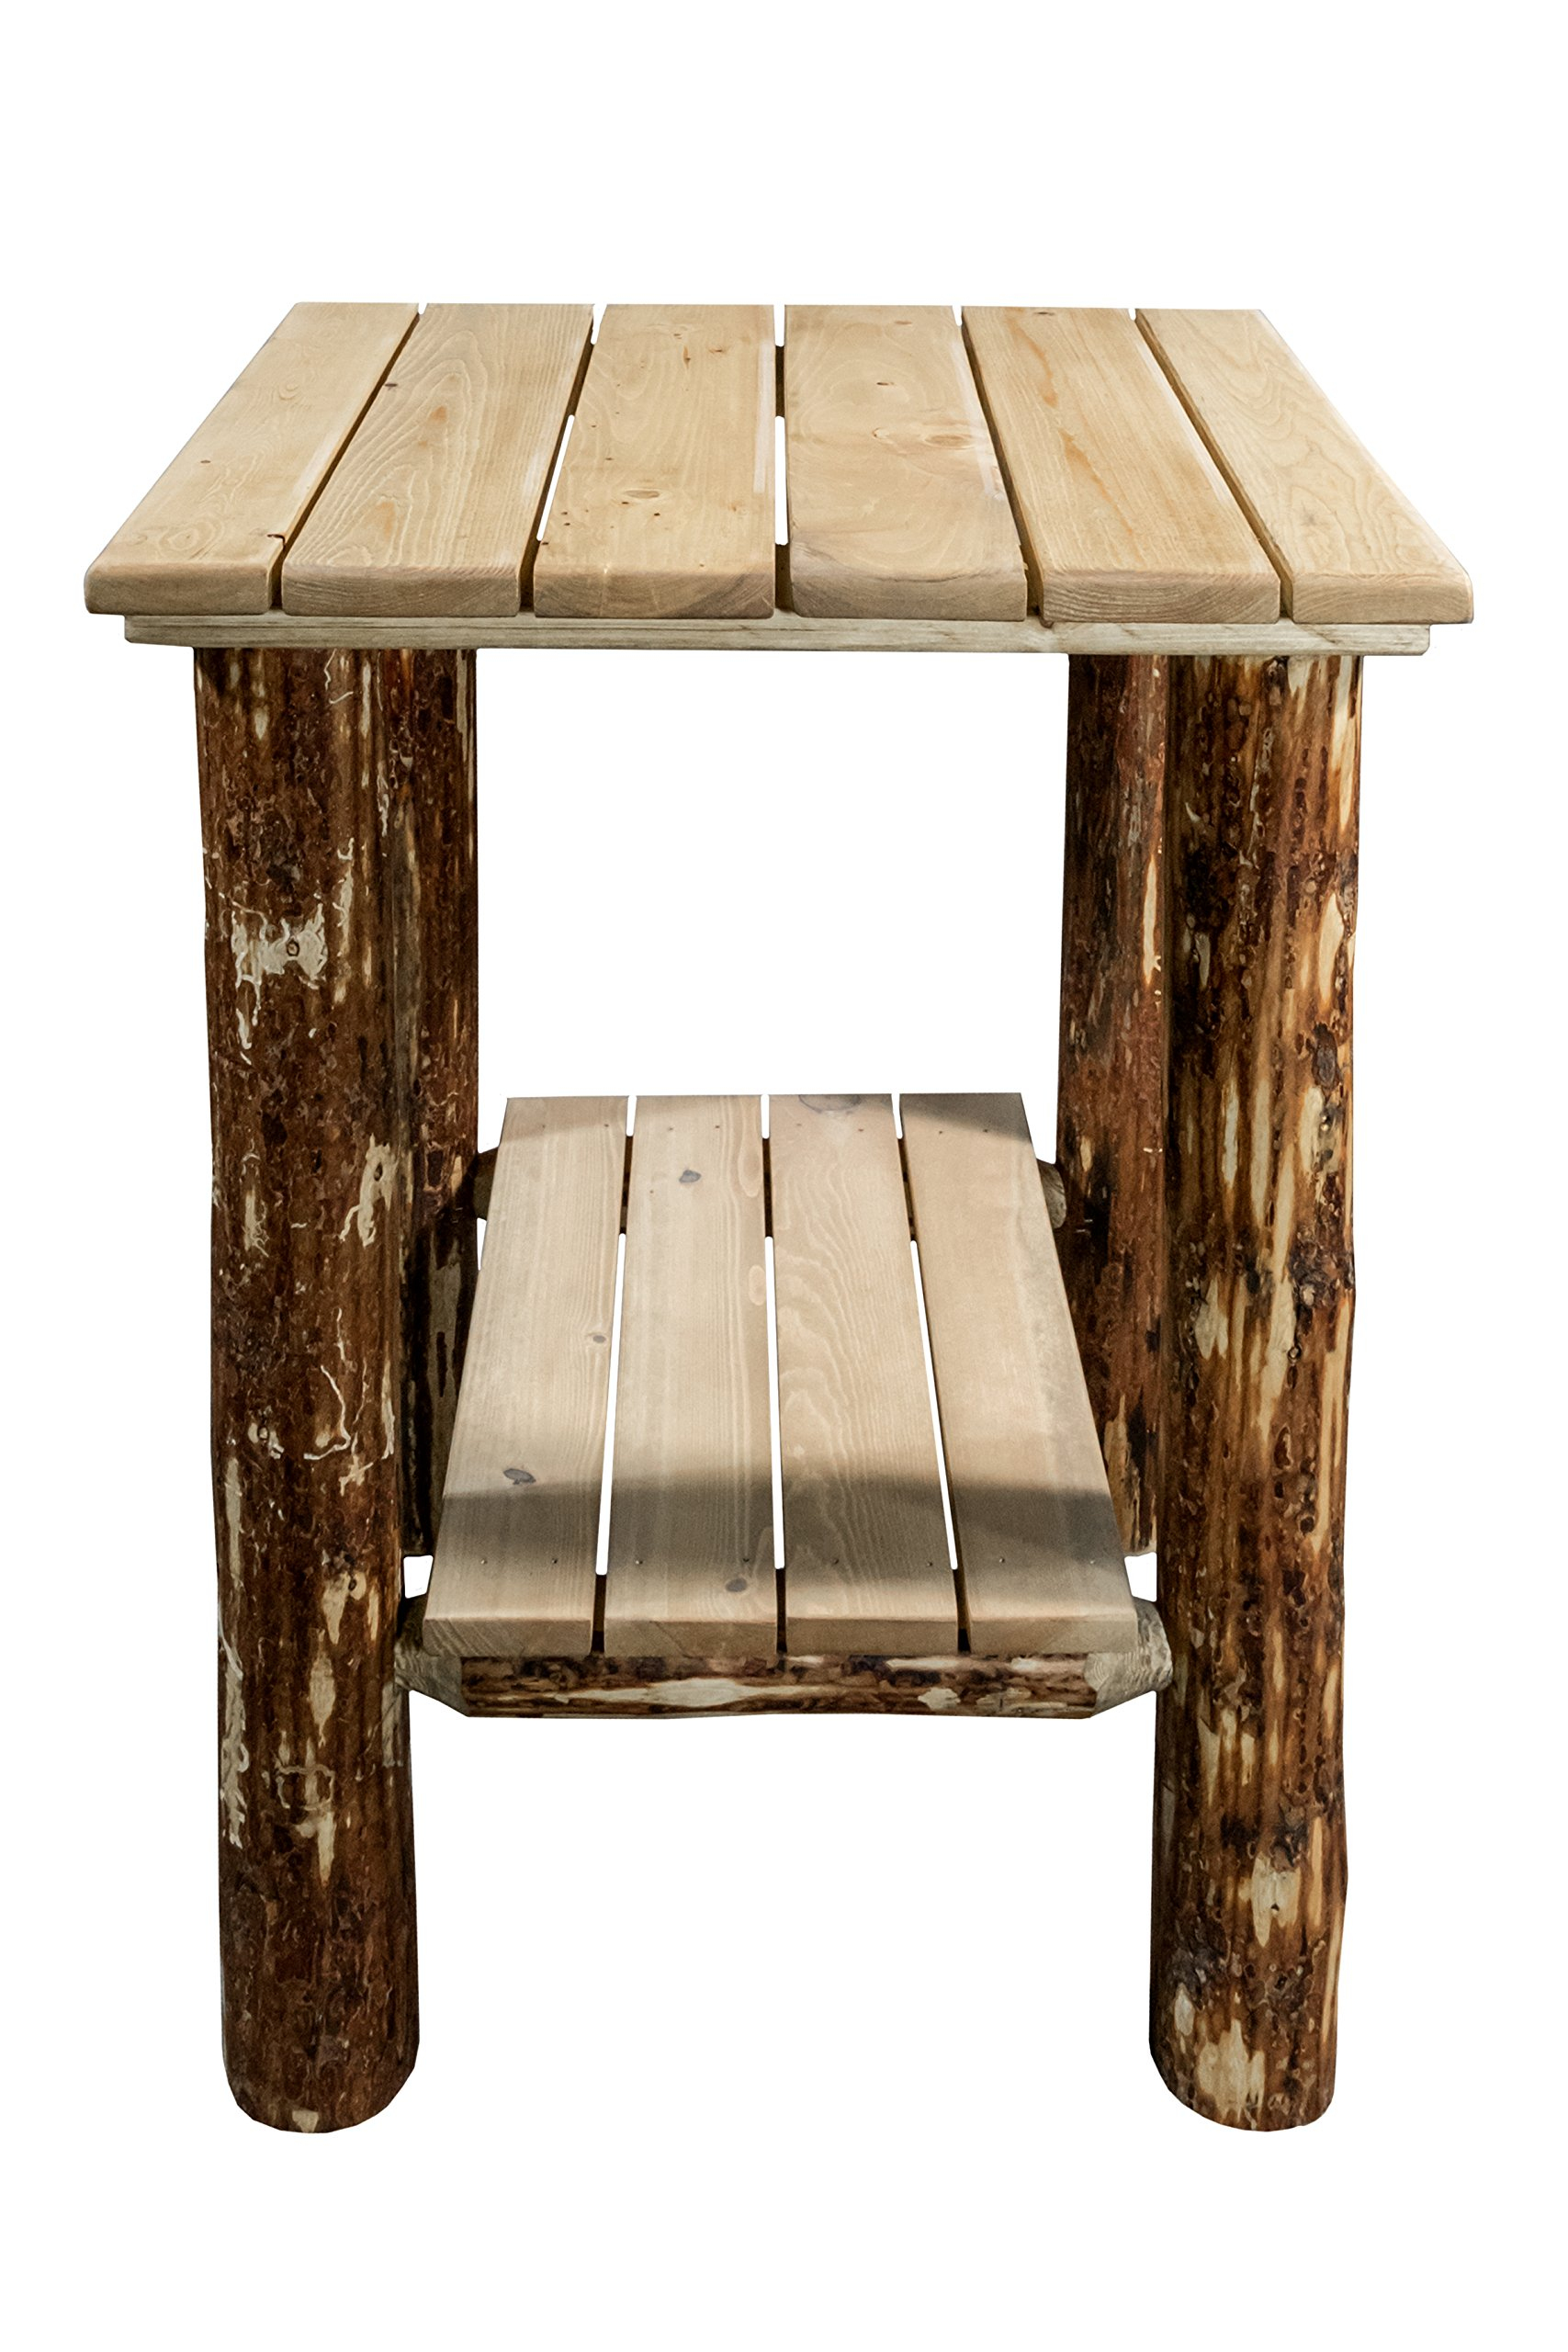 Montana Woodworks Glacier Country Collection Exterior End Table, Exterior Stain Finish